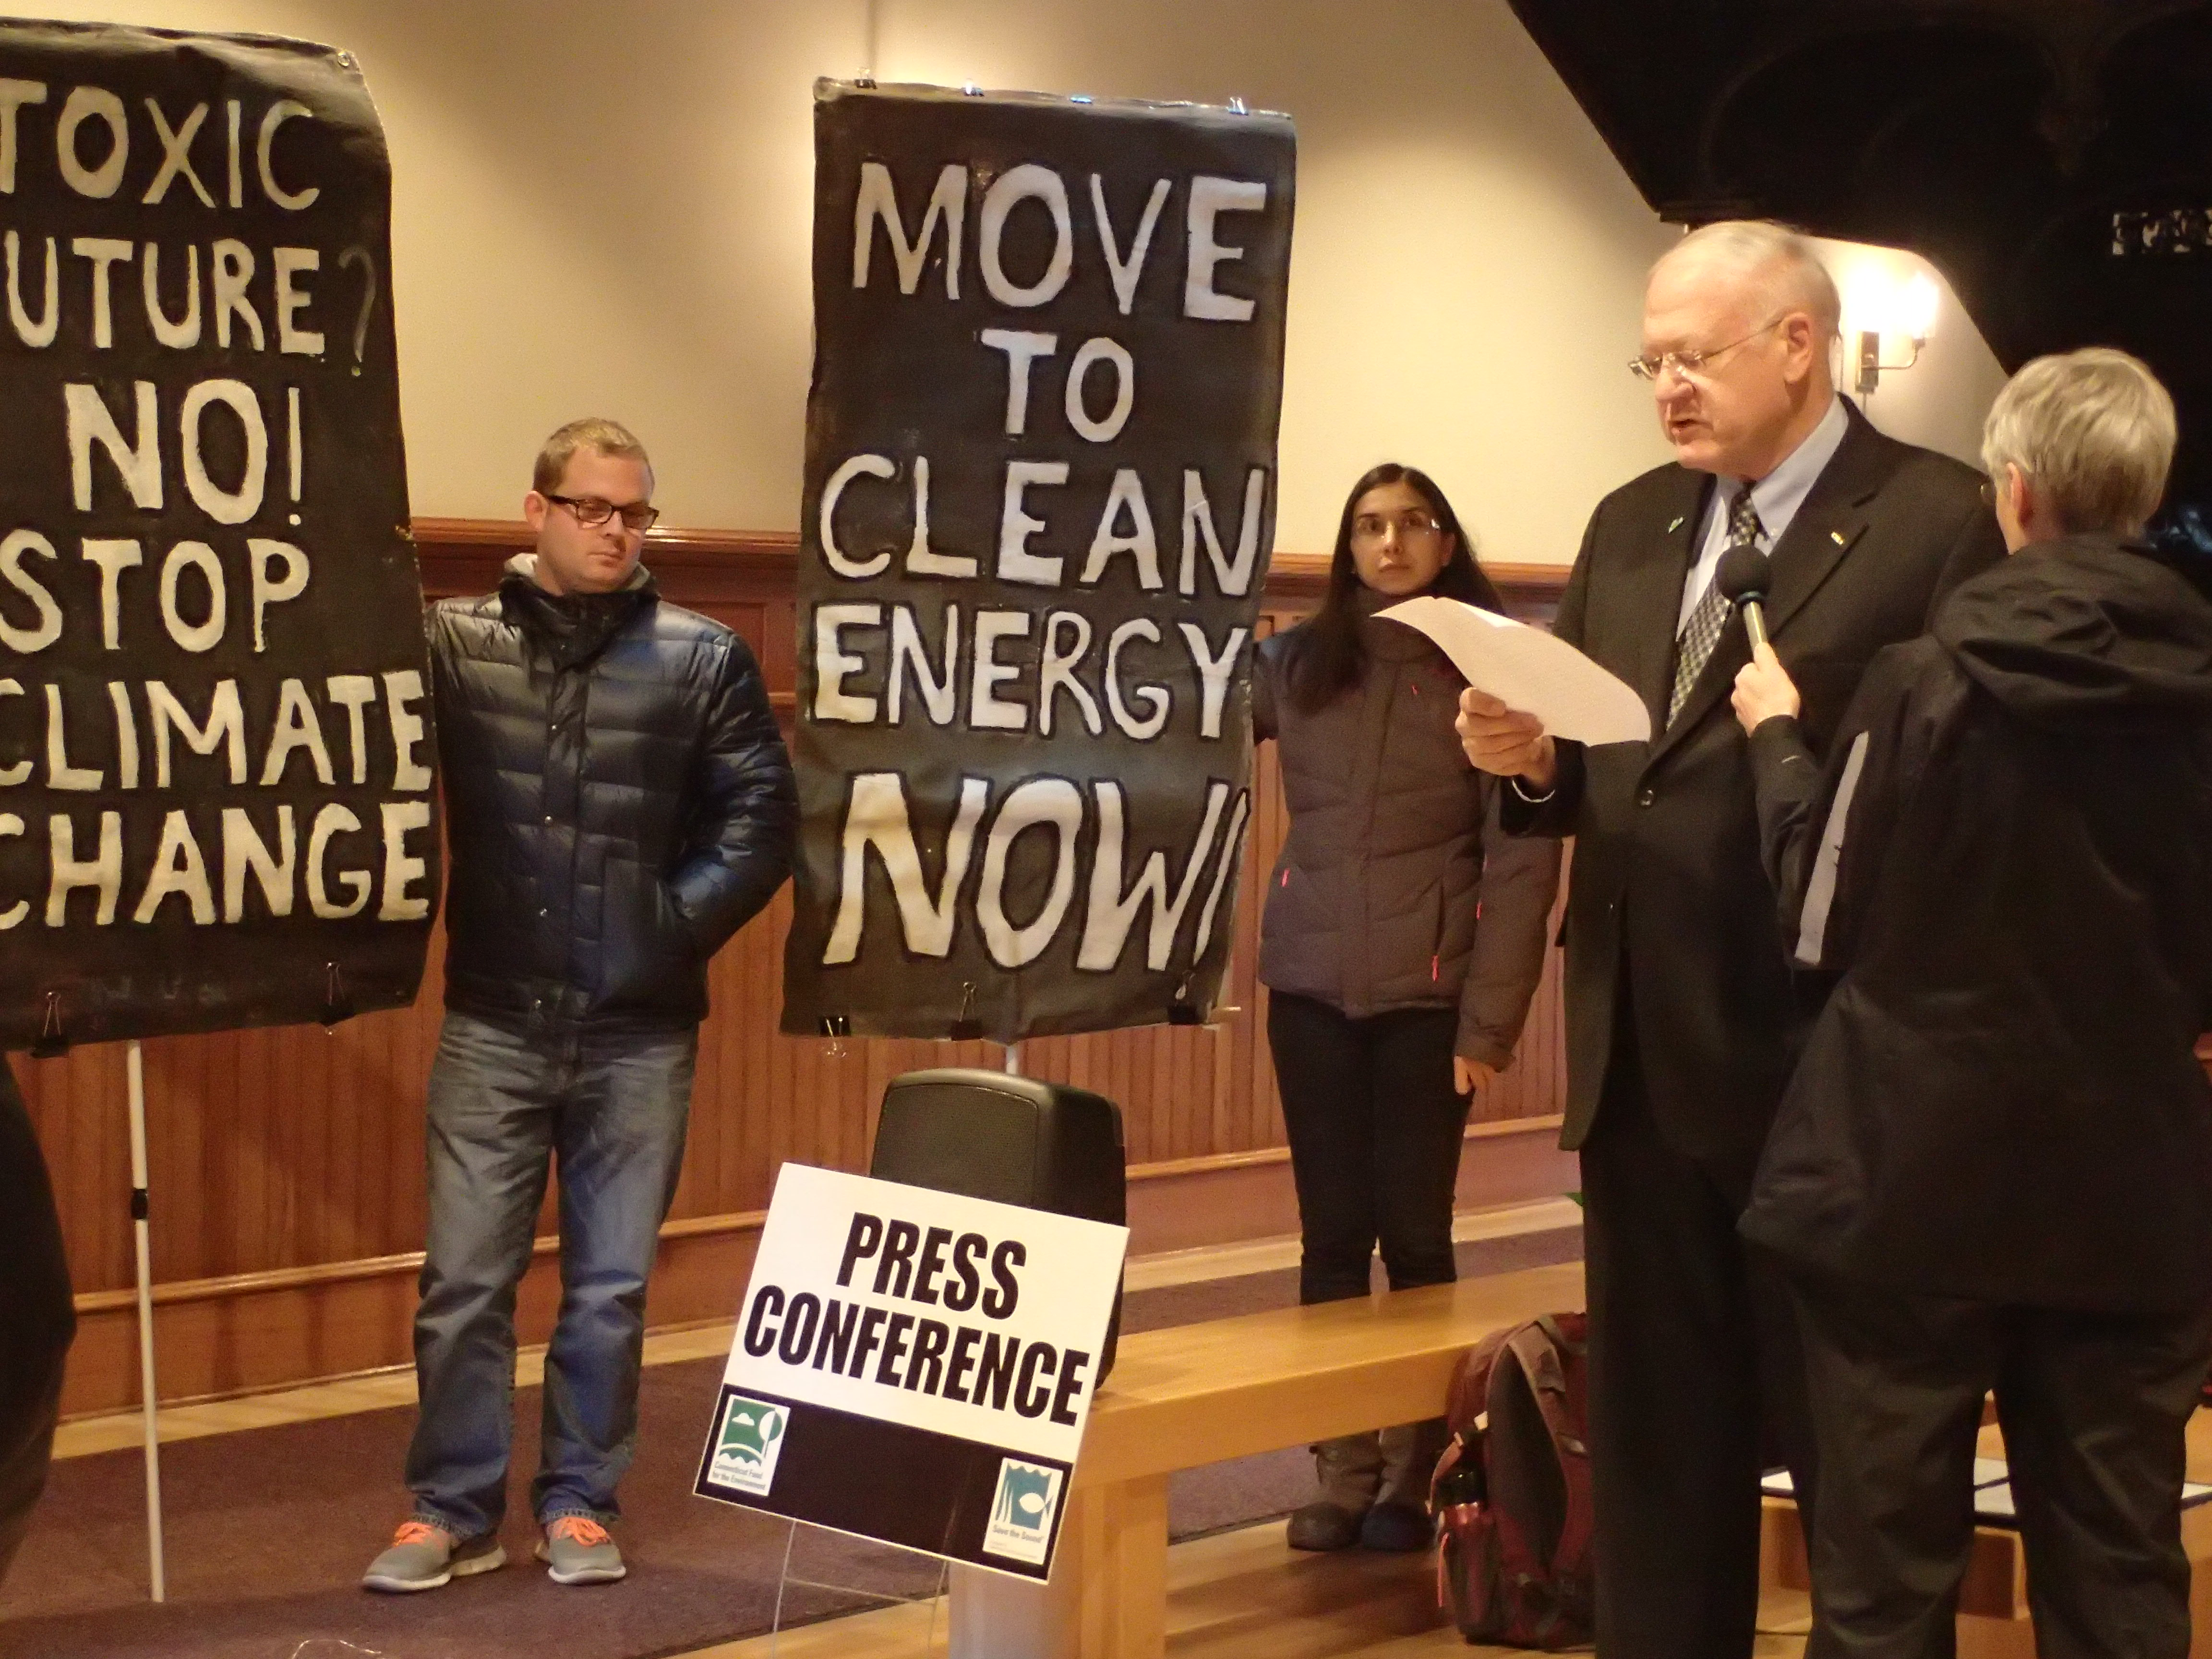 Lee Grannis, coordinator of the Greater New Haven Clean Cities Coalition, calls on New Haven's Mayor Toni Harp to update the city's decade-old climate action plan